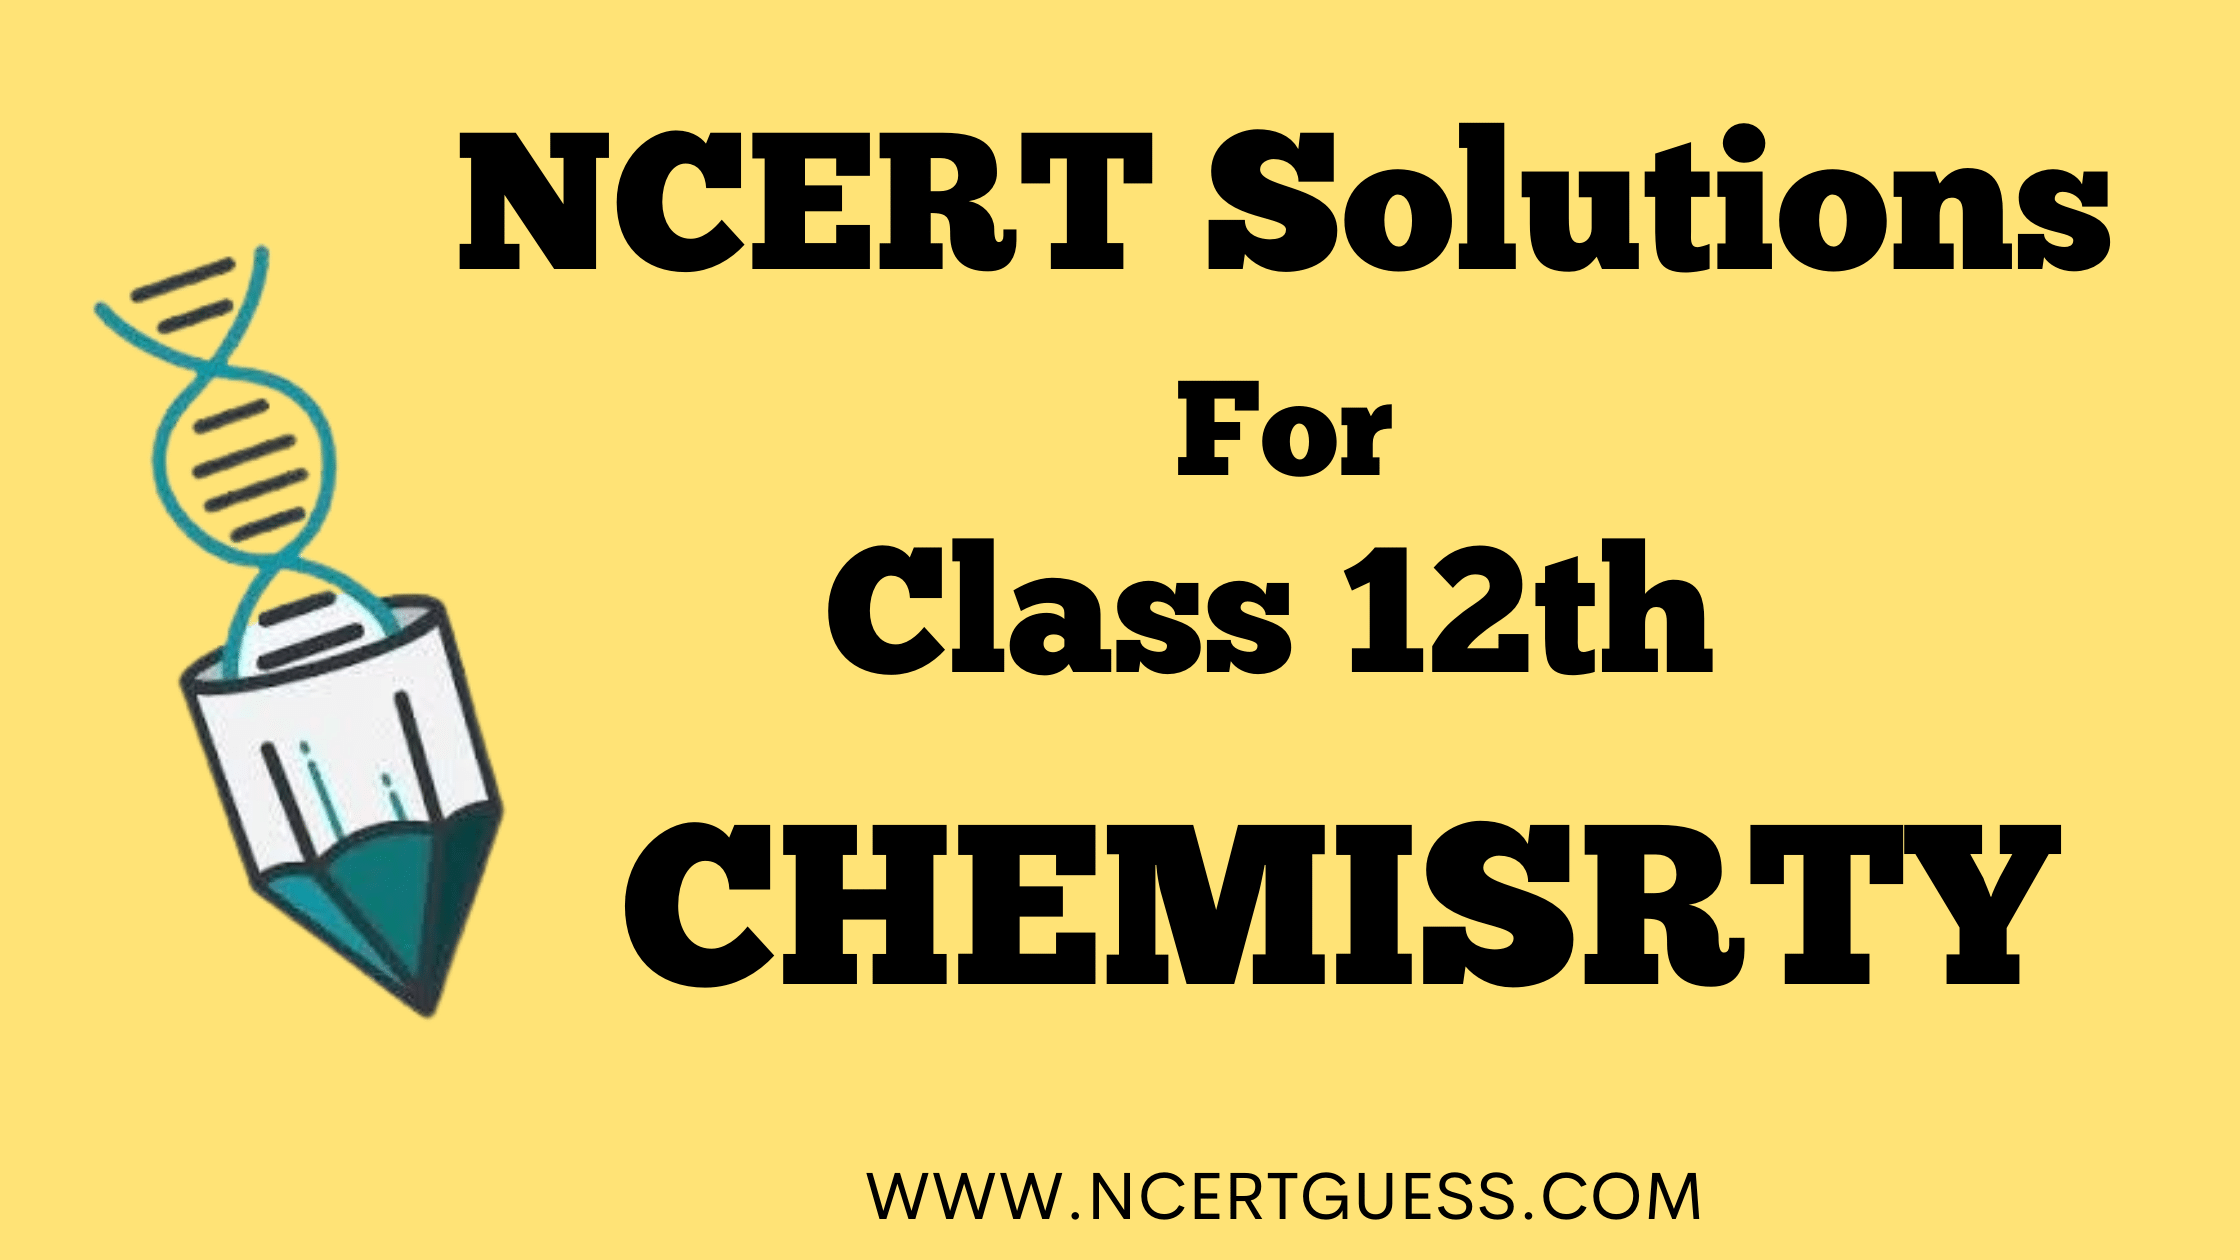 NCERT SOLUTIONS CLASS 12TH CHEMISTRY